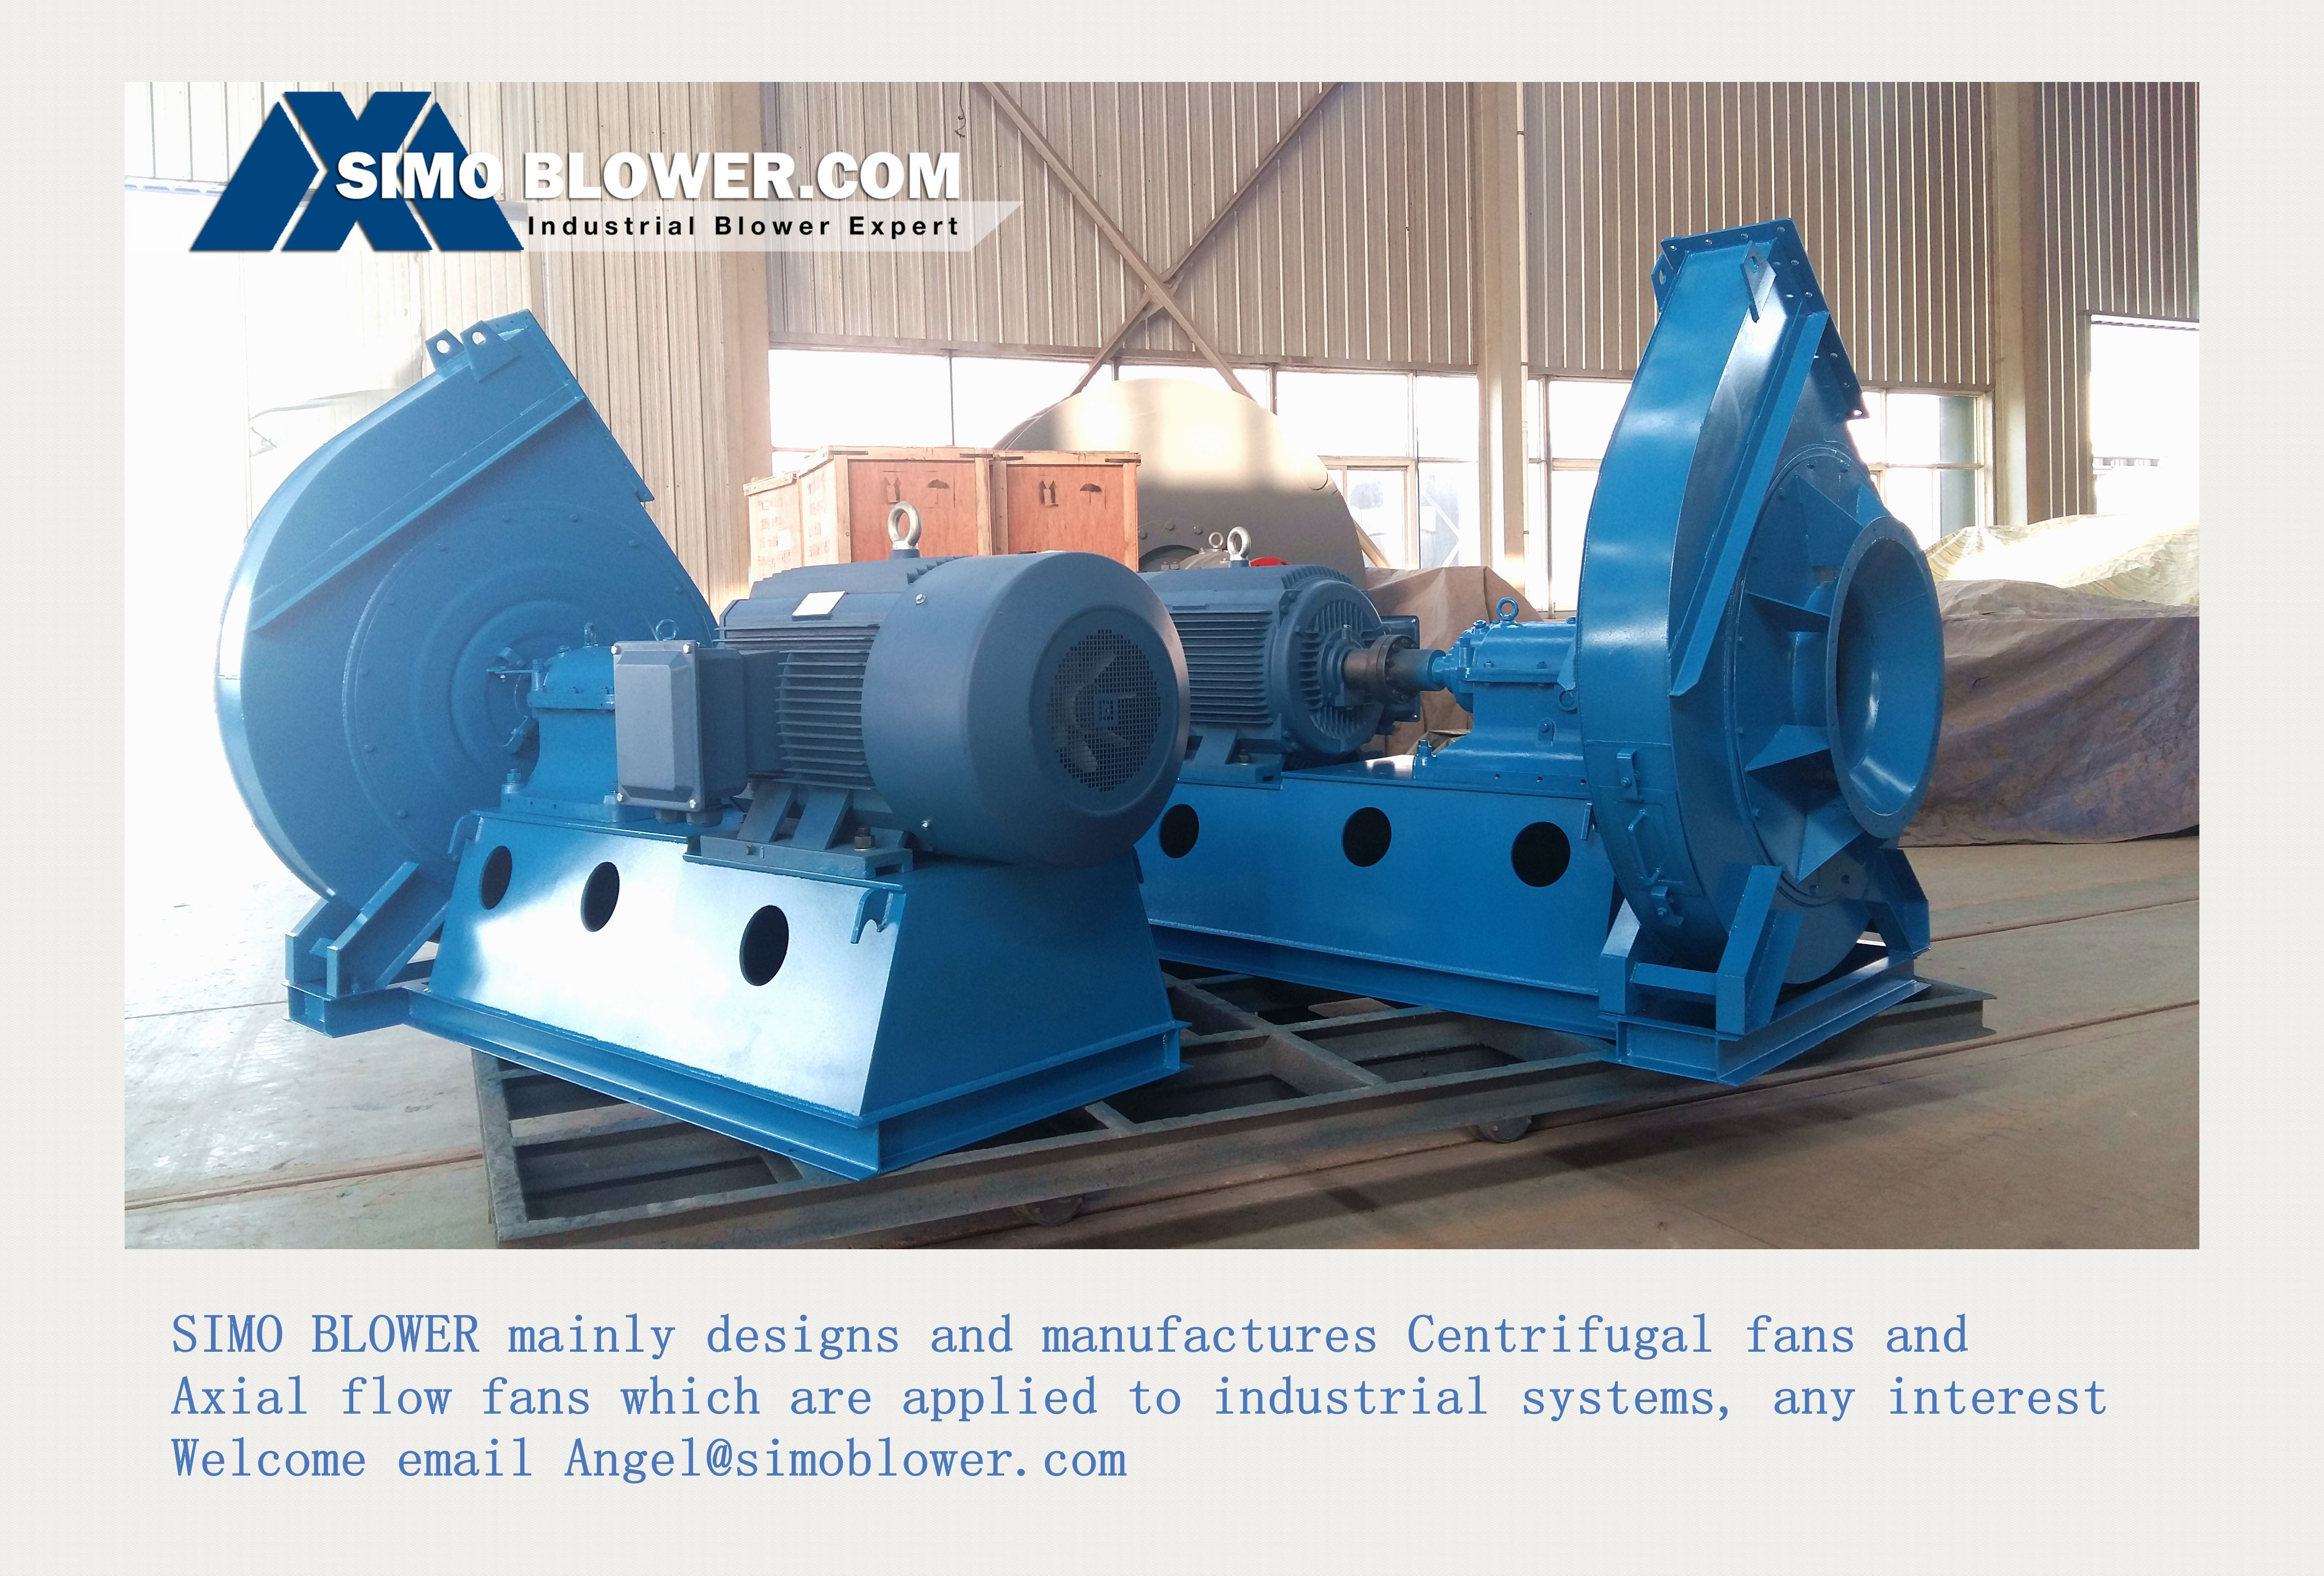 Industrial centrifugal blower fan used for industrial systems, such ...